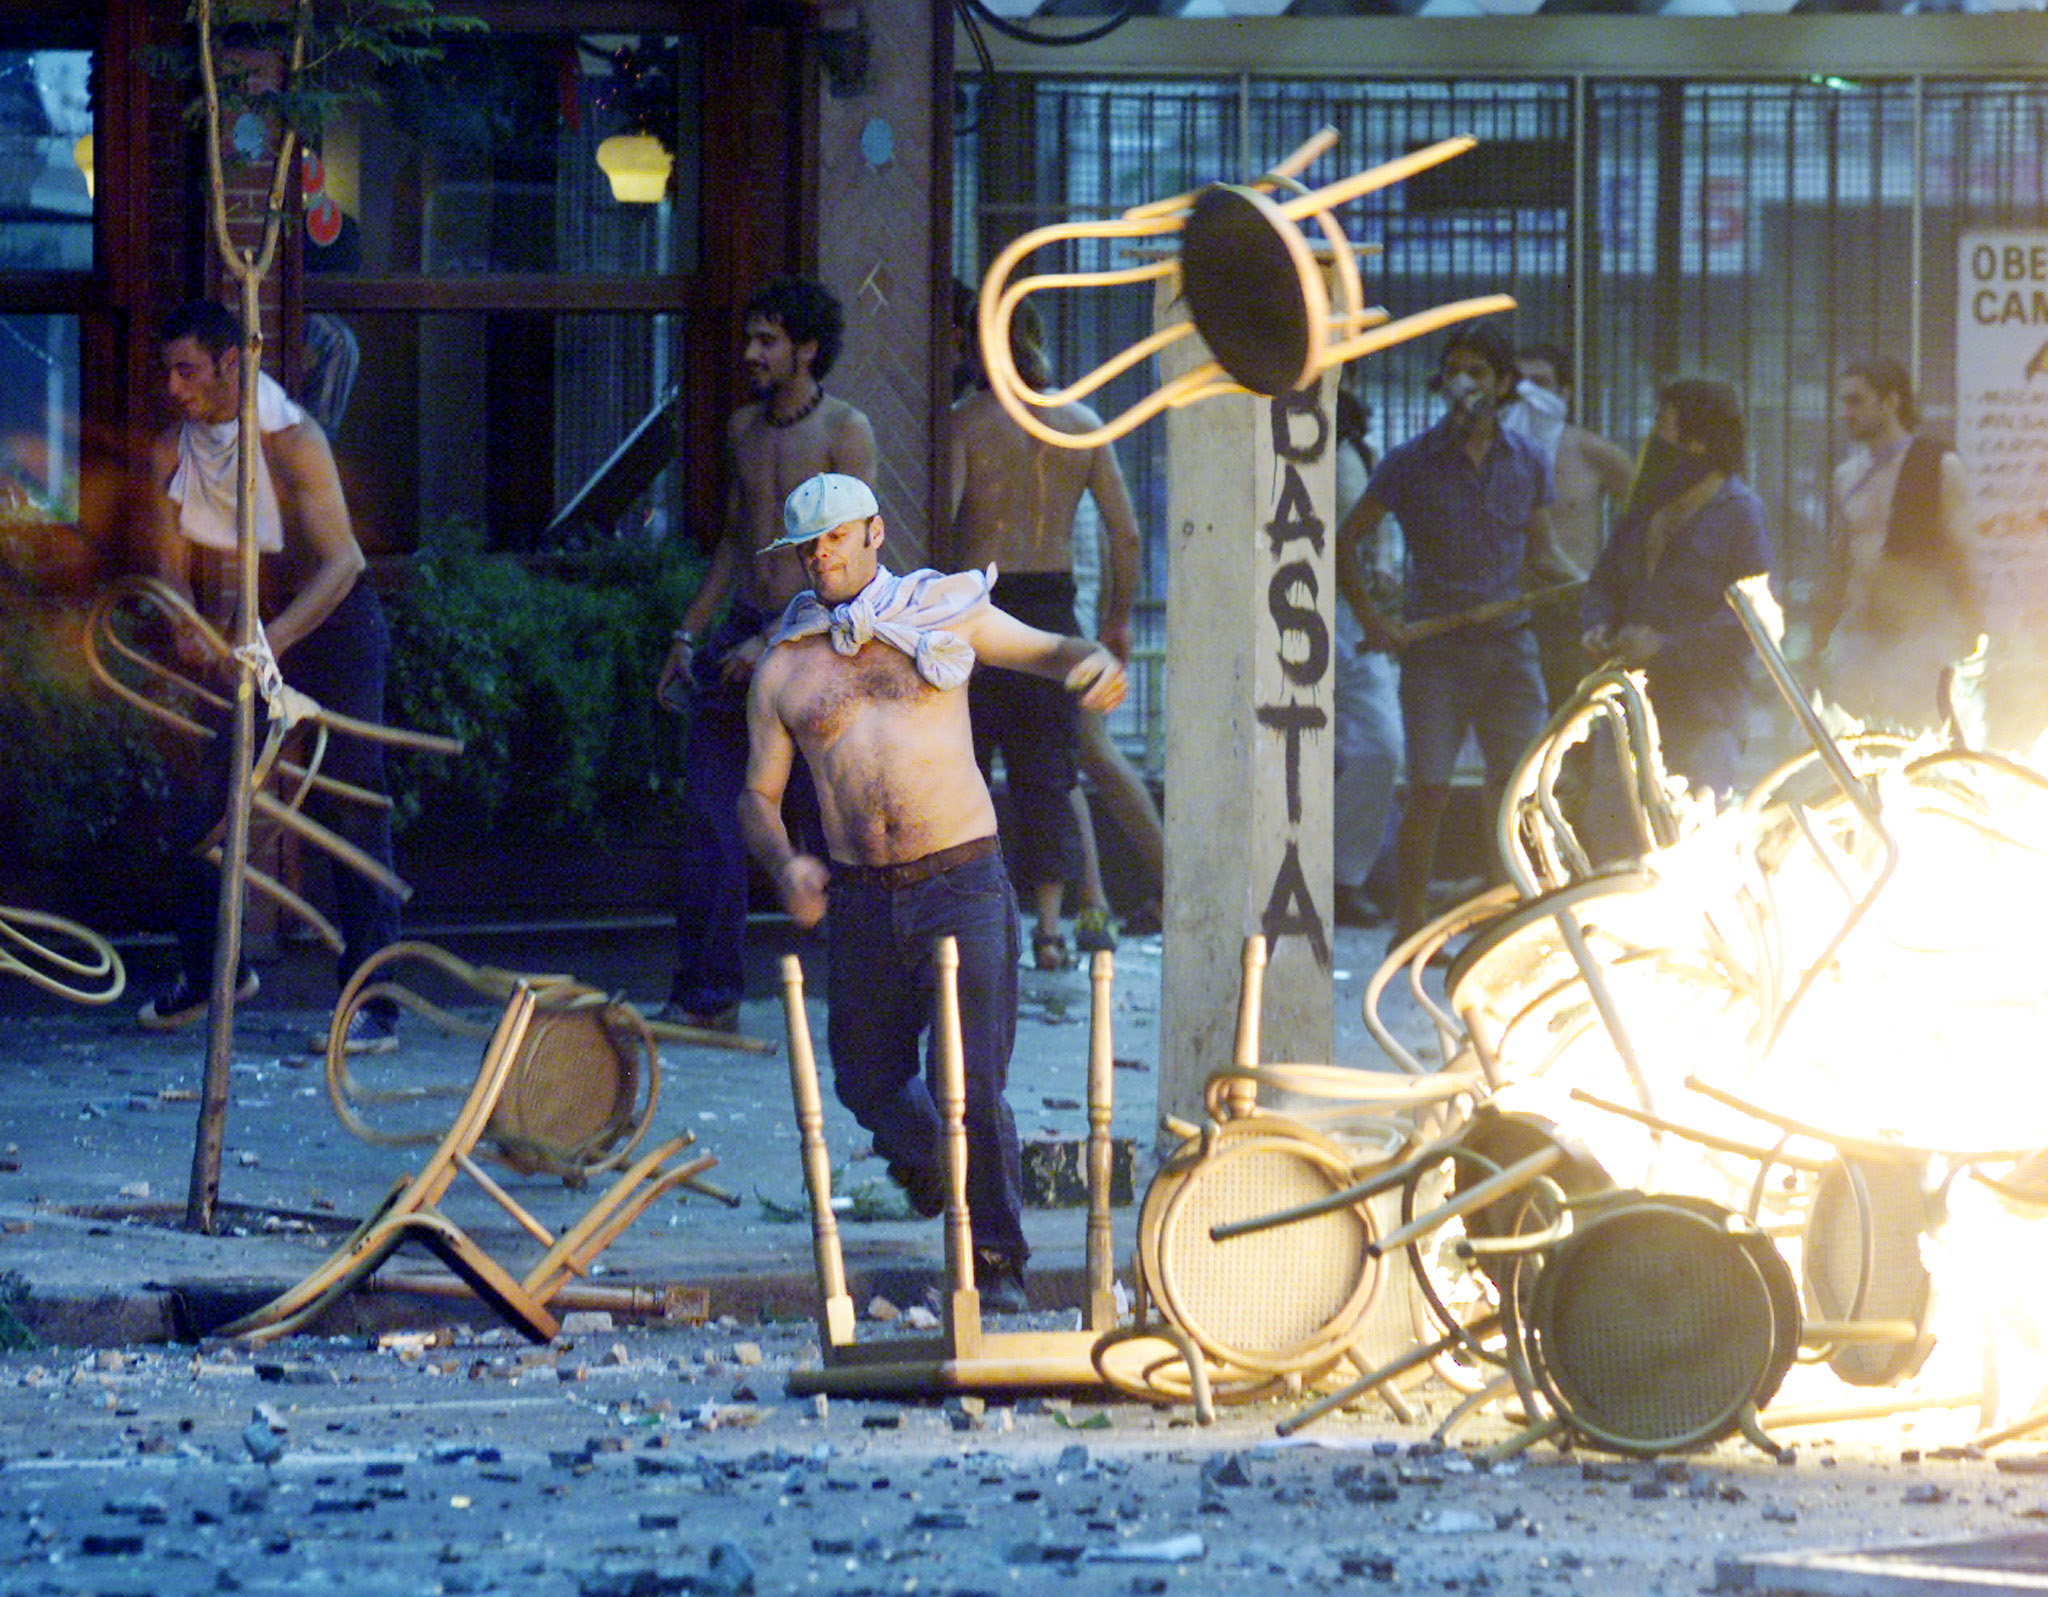 Rioters create a bonfire to use as a barricade during clashes in the city's financial district in Buenos Aires on December 20, 2001. [Argentine President Fernando de la Rua stepped down after thousands of protesters gathered at the Plaza de Mayo square, demanding his resignation.] At least five people died and dozens were seriously injured in the clashes. - RTXKY0J